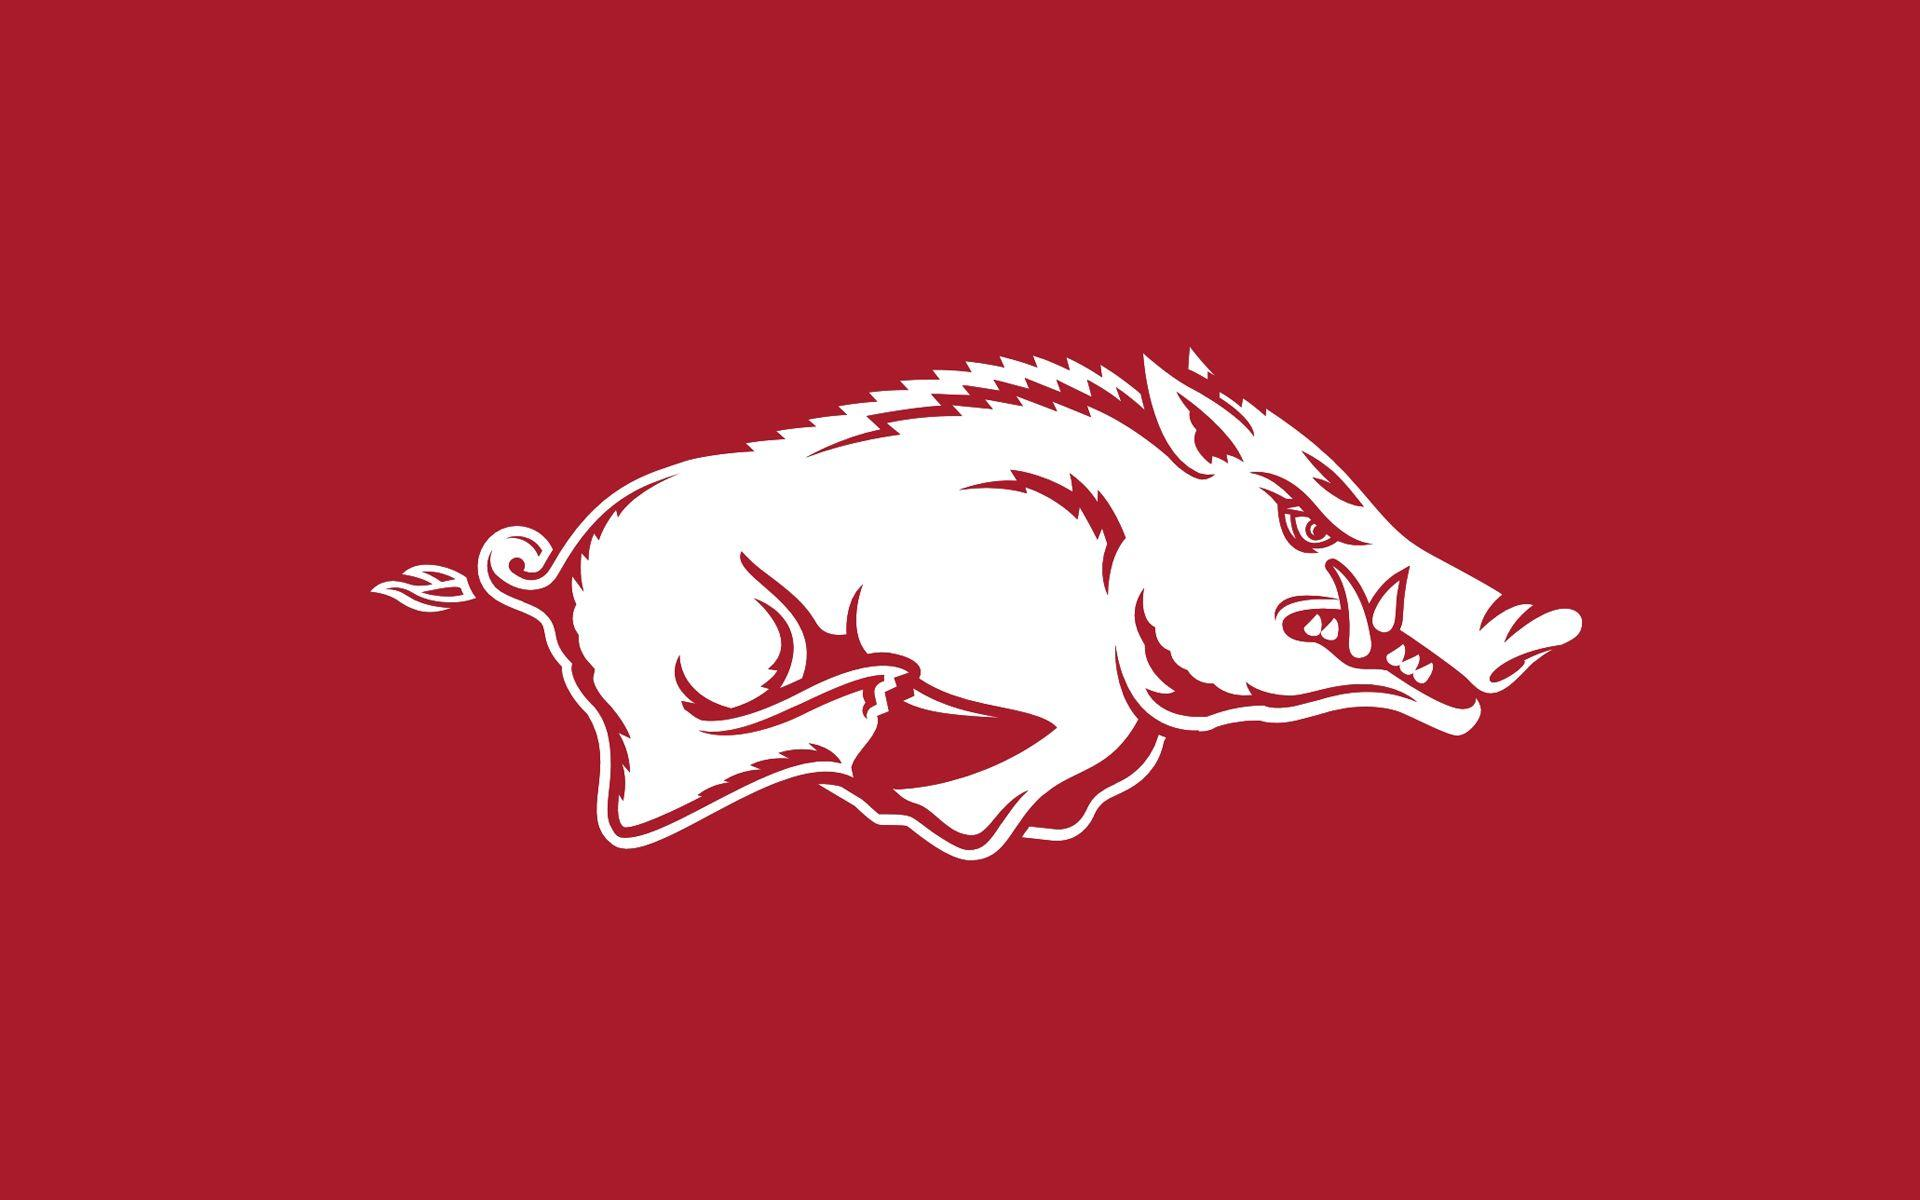 Razorback Wallpaper Free - WallpaperSafari